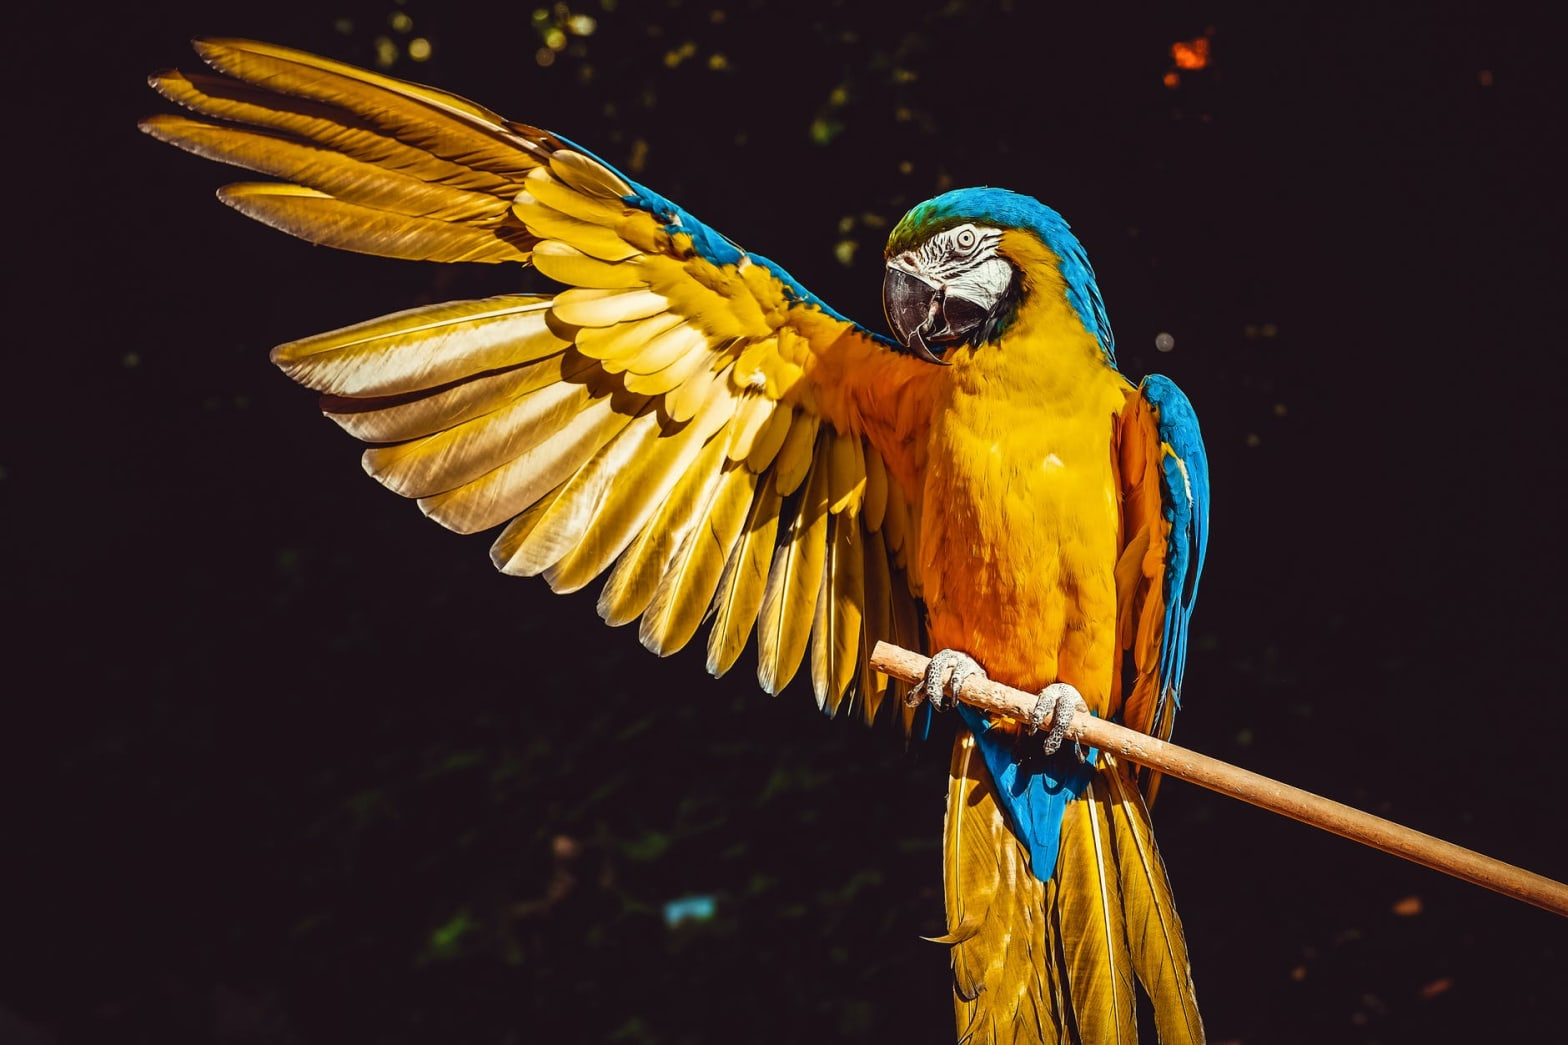 photo of yellow and blue macaw with one wing open perched on a wooden stick